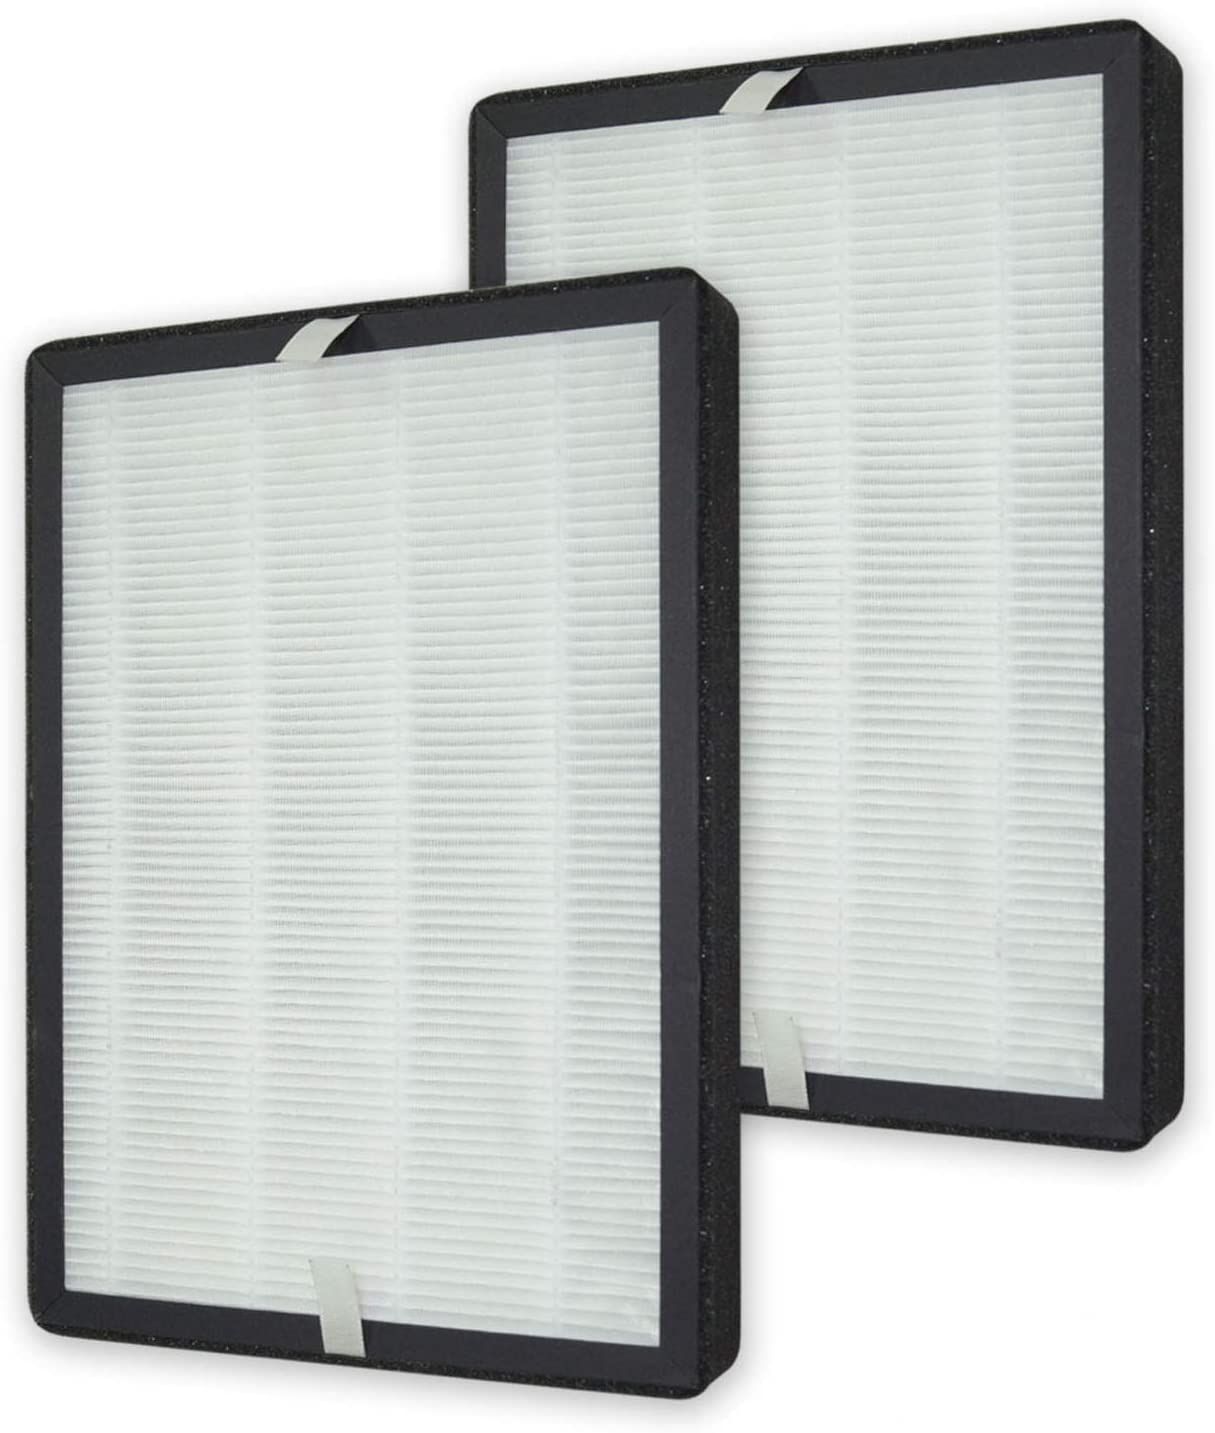 Large special price !! PUREBURG 2-Pack Replacement HEPA with Challenge the lowest price of Japan ☆ Filter Compatible MOOKA